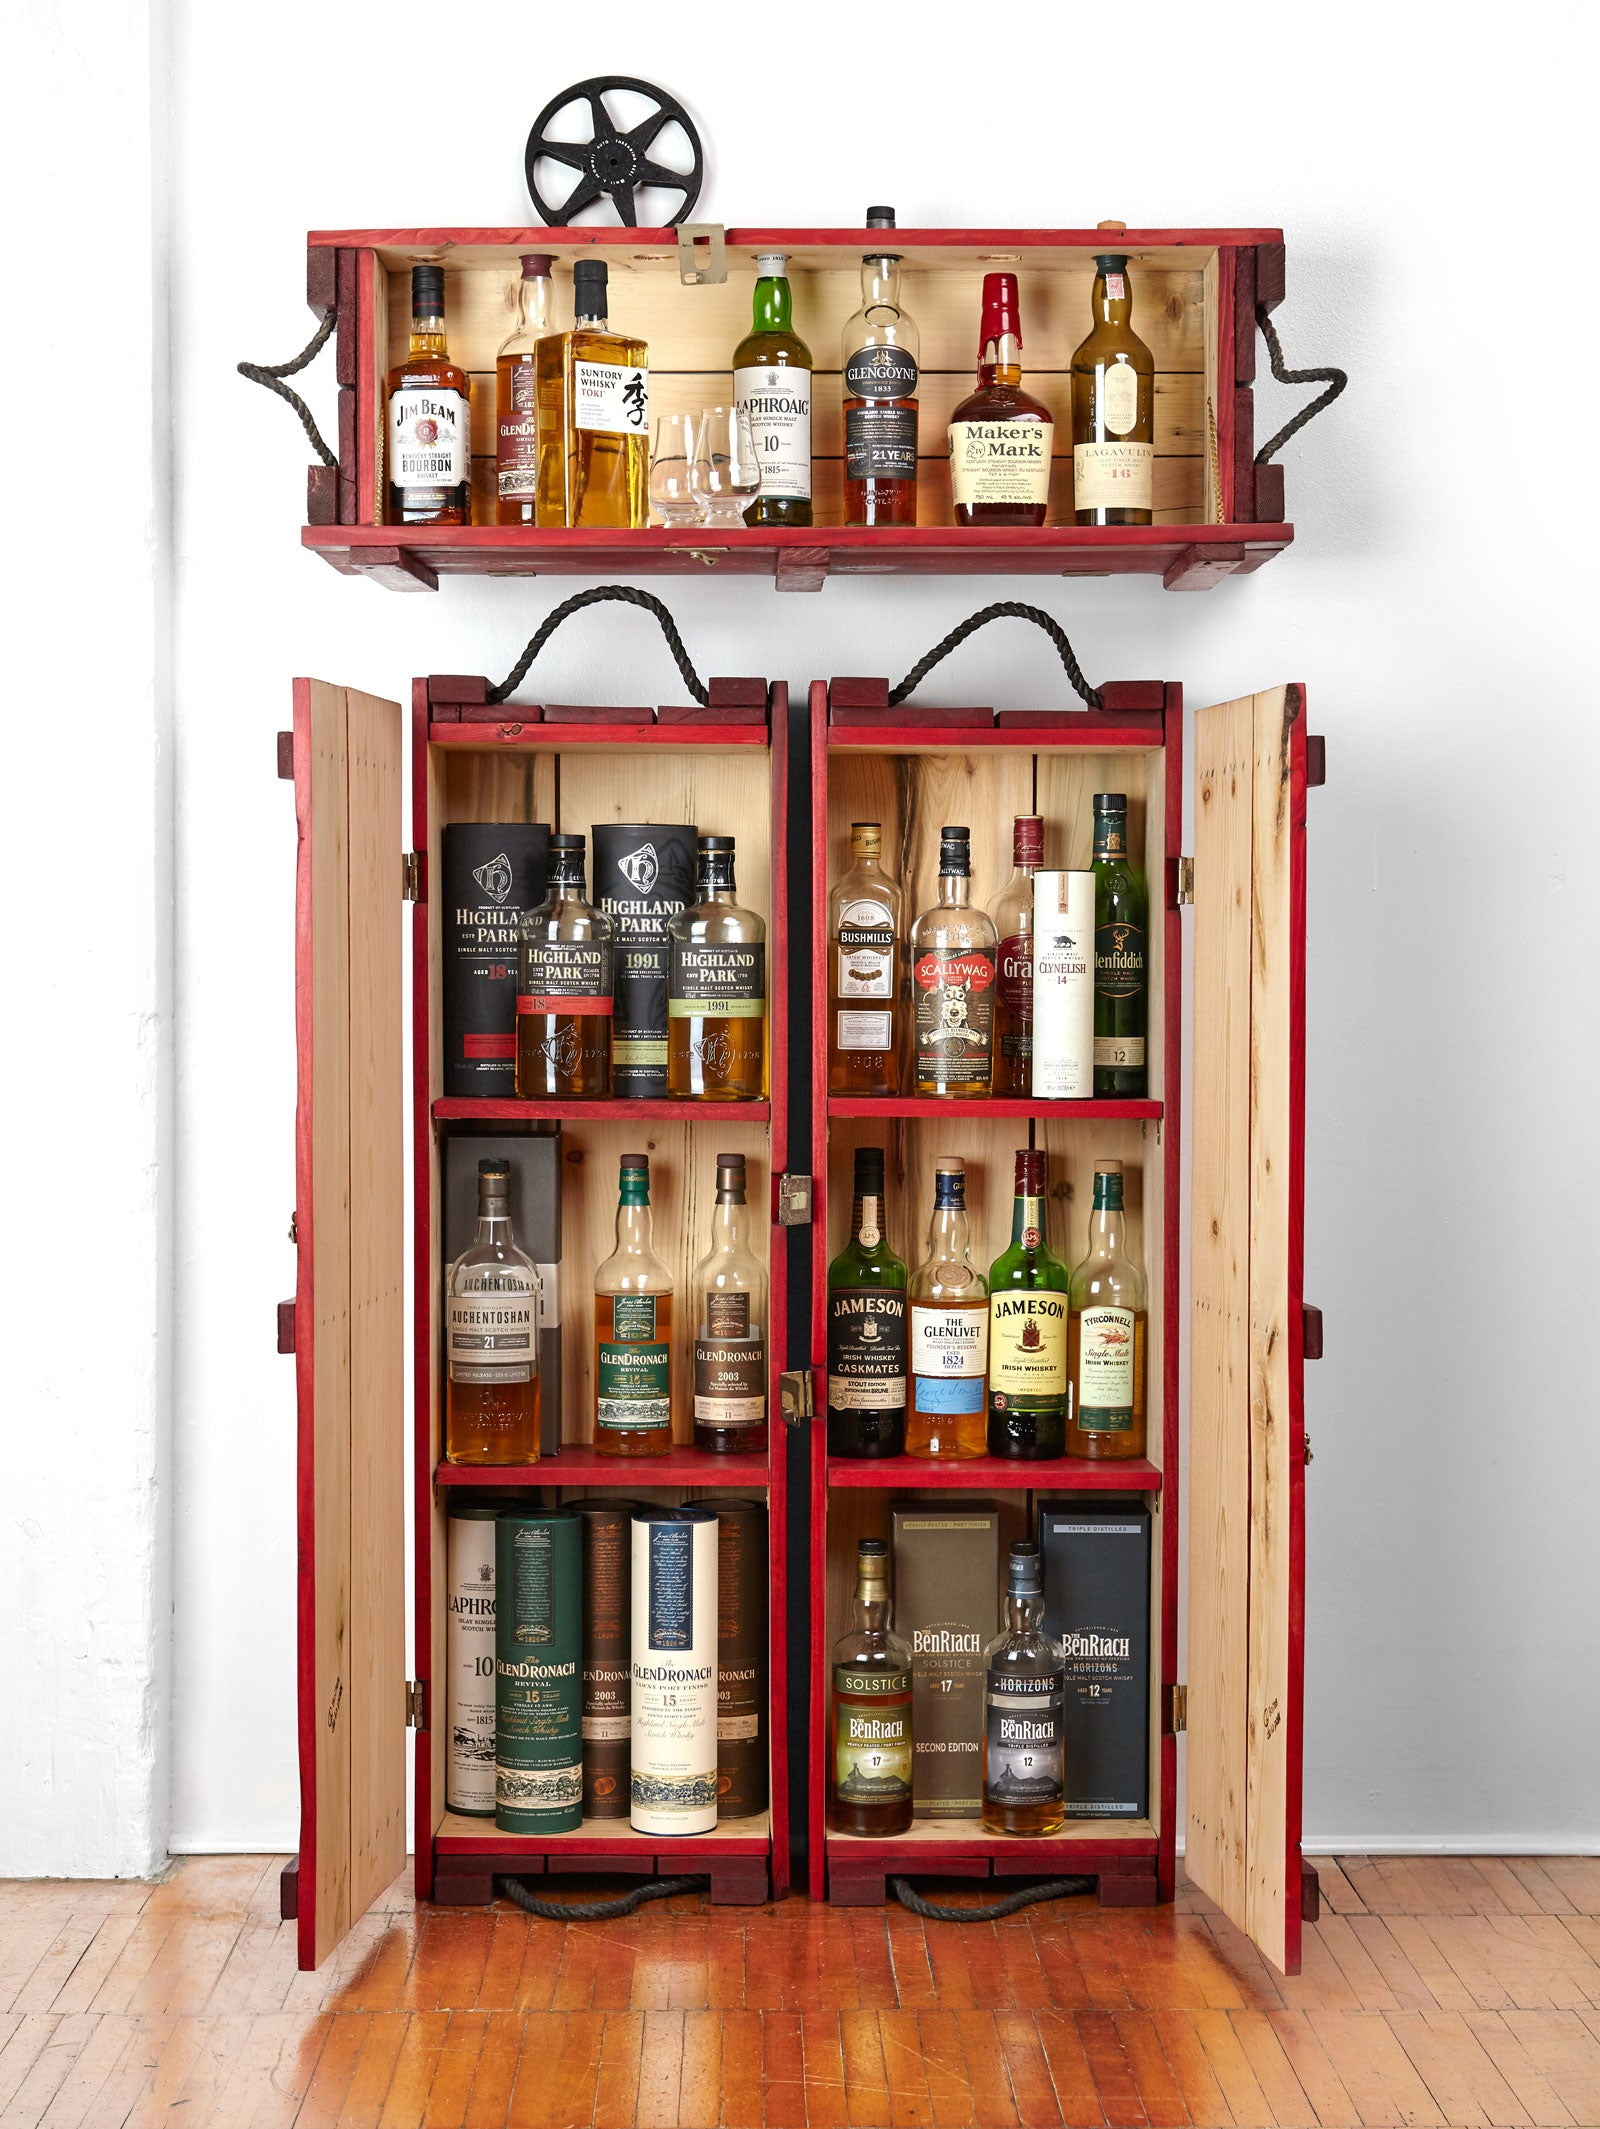 Whiskey cabinet and mini Bar | Red wooden liquor cabinets | Whiskey, scotch, rye display